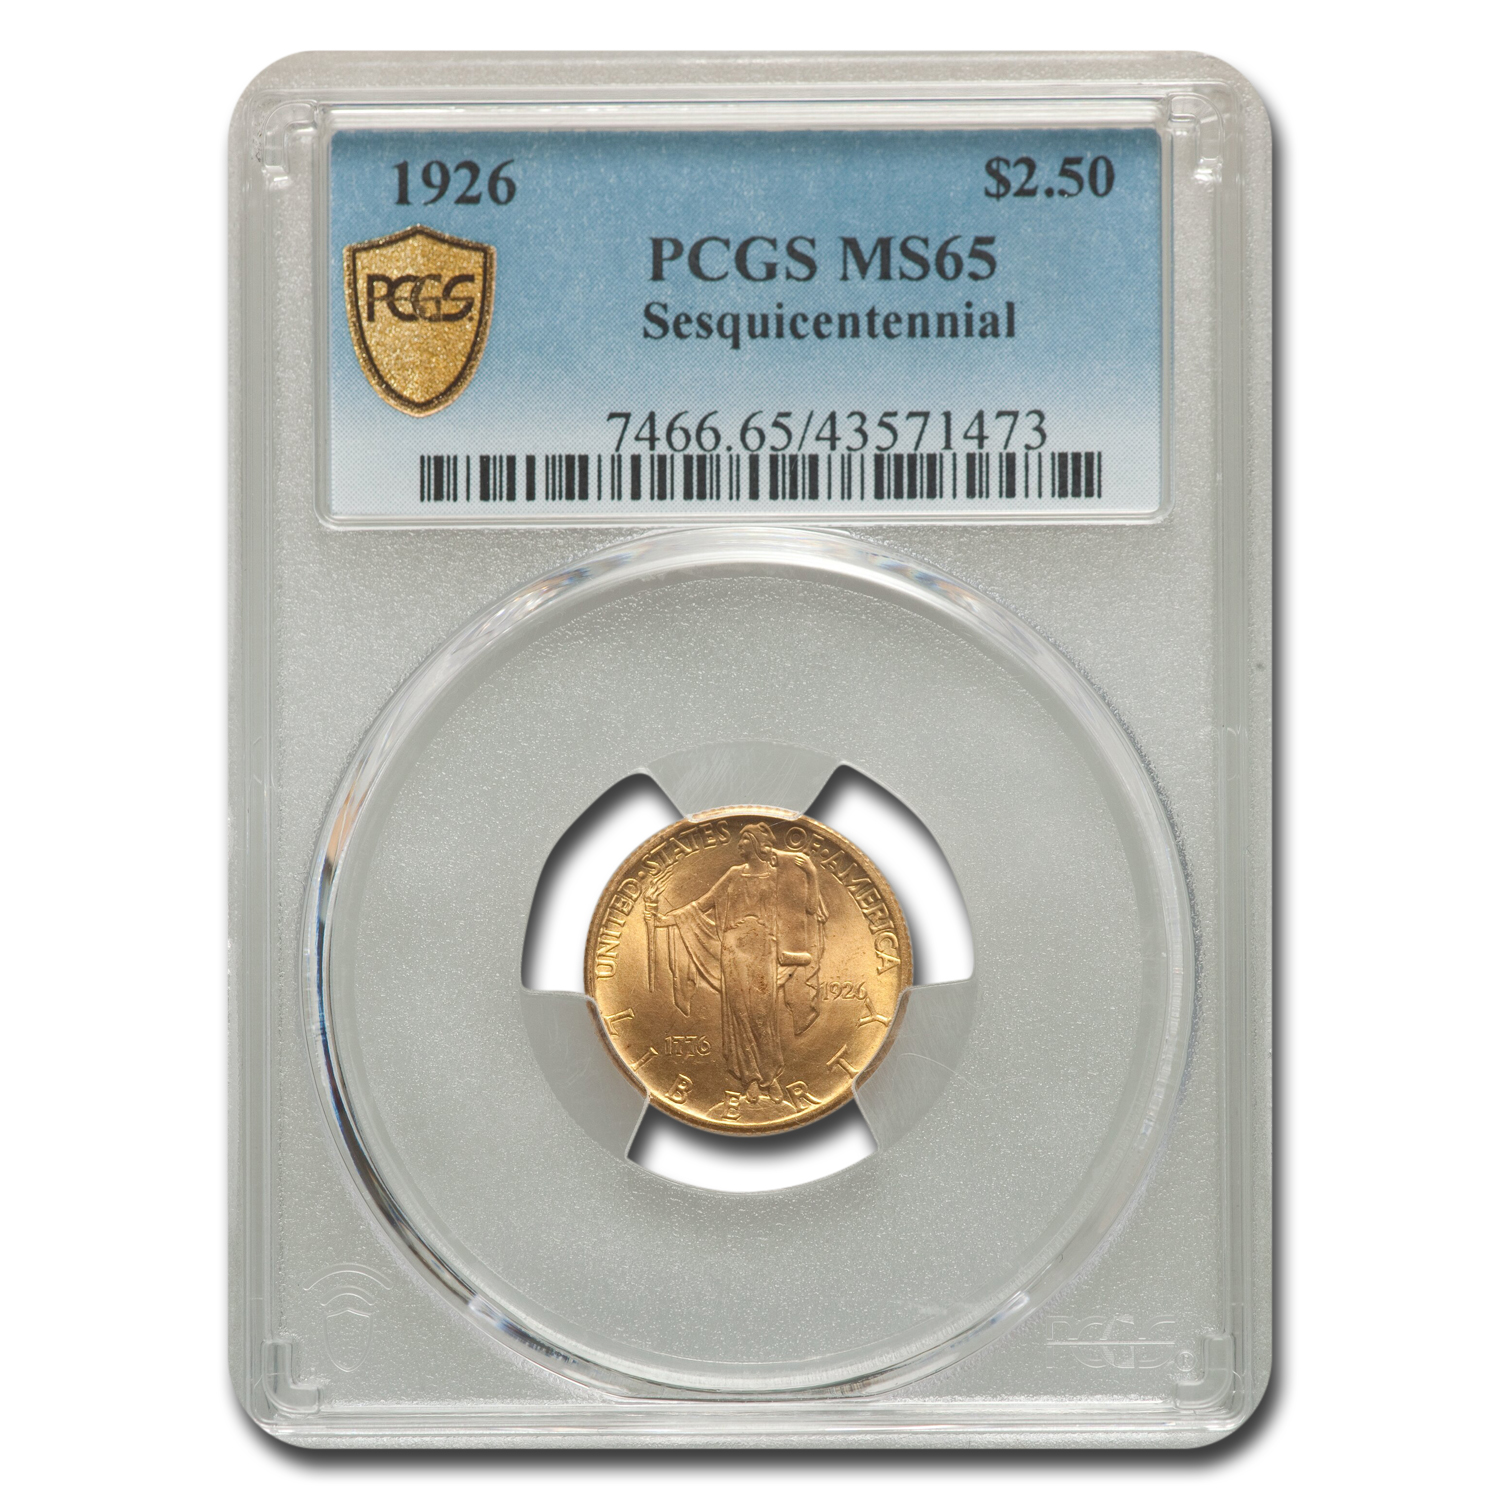 1926 Gold $2.50 America Sesquicentennial MS-65 PCGS